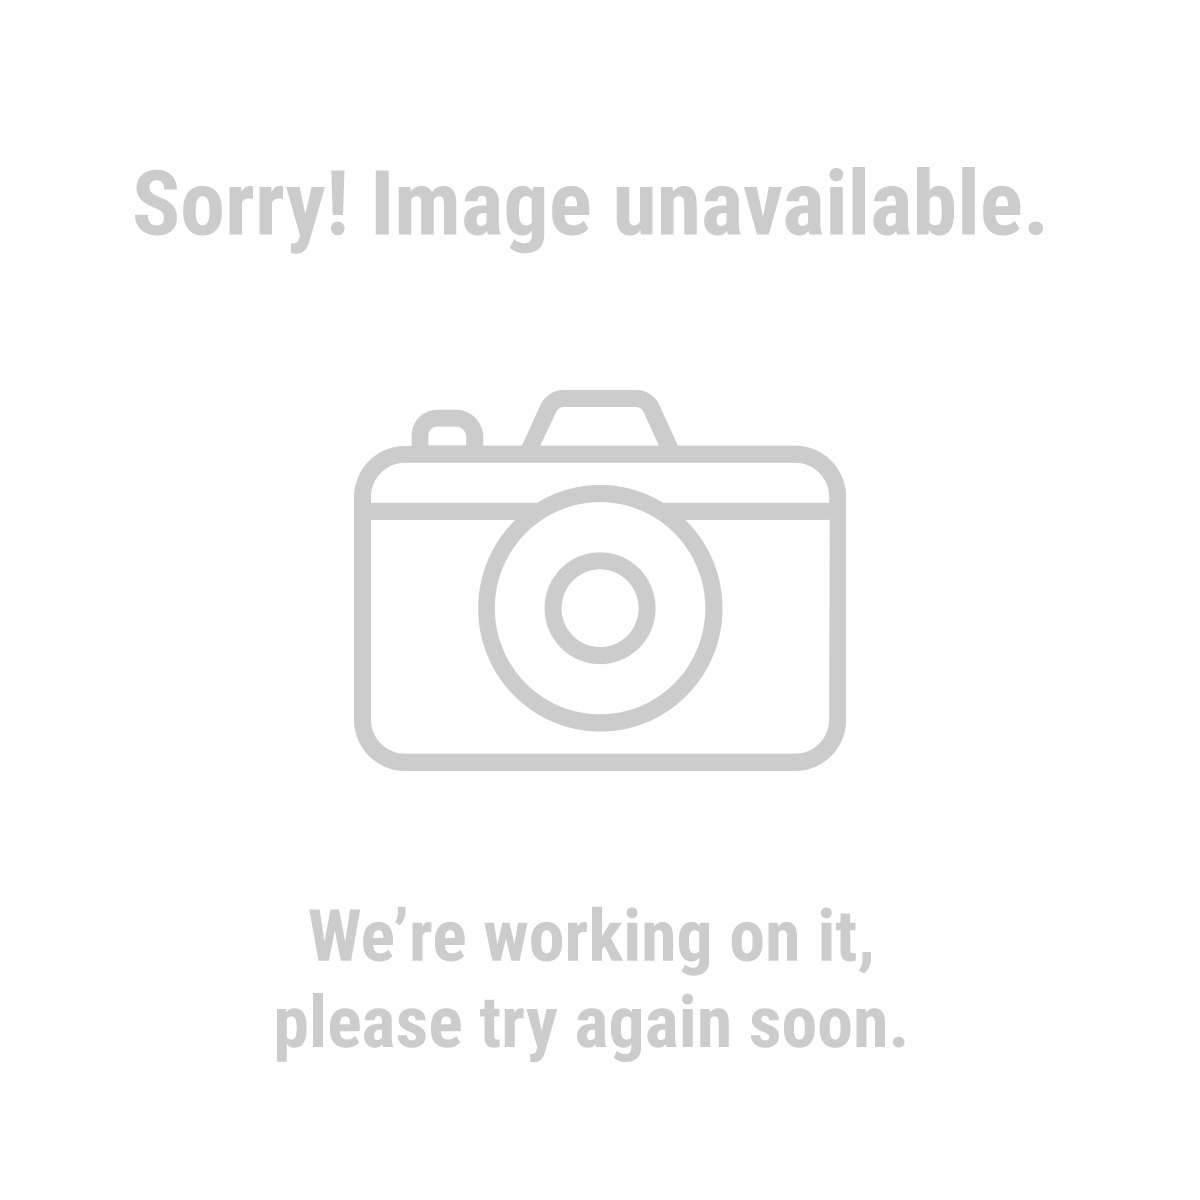 Pittsburgh Automotive 92649 A/C Manifold Gauge Set